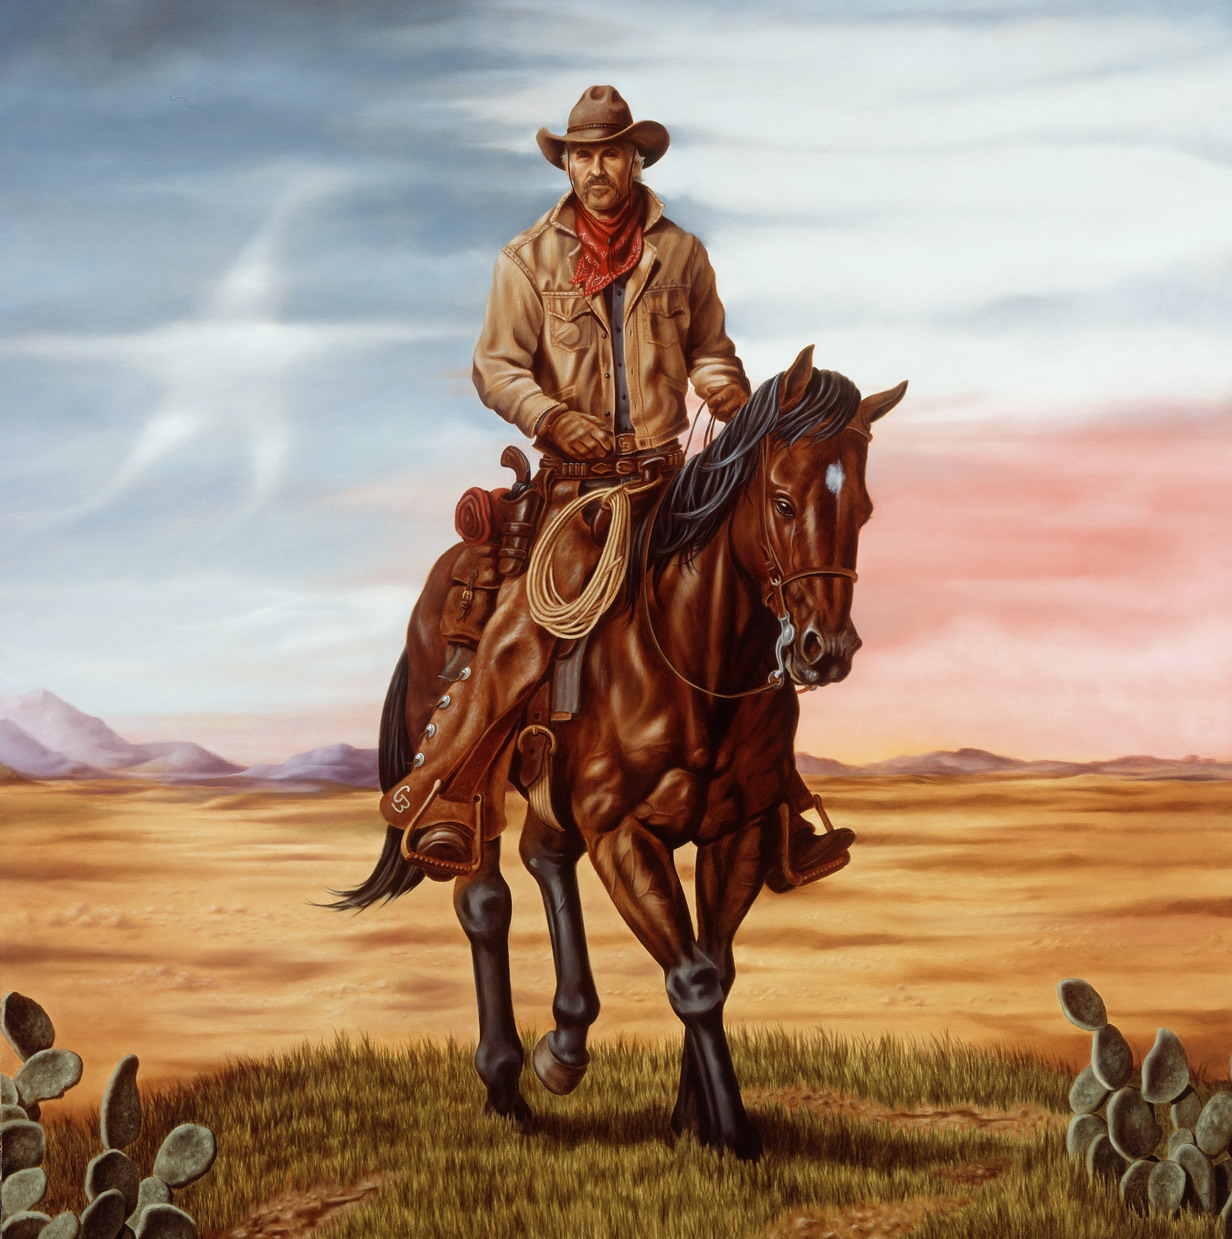 44+ Free Western Cowboy Wallpaper on WallpaperSafari